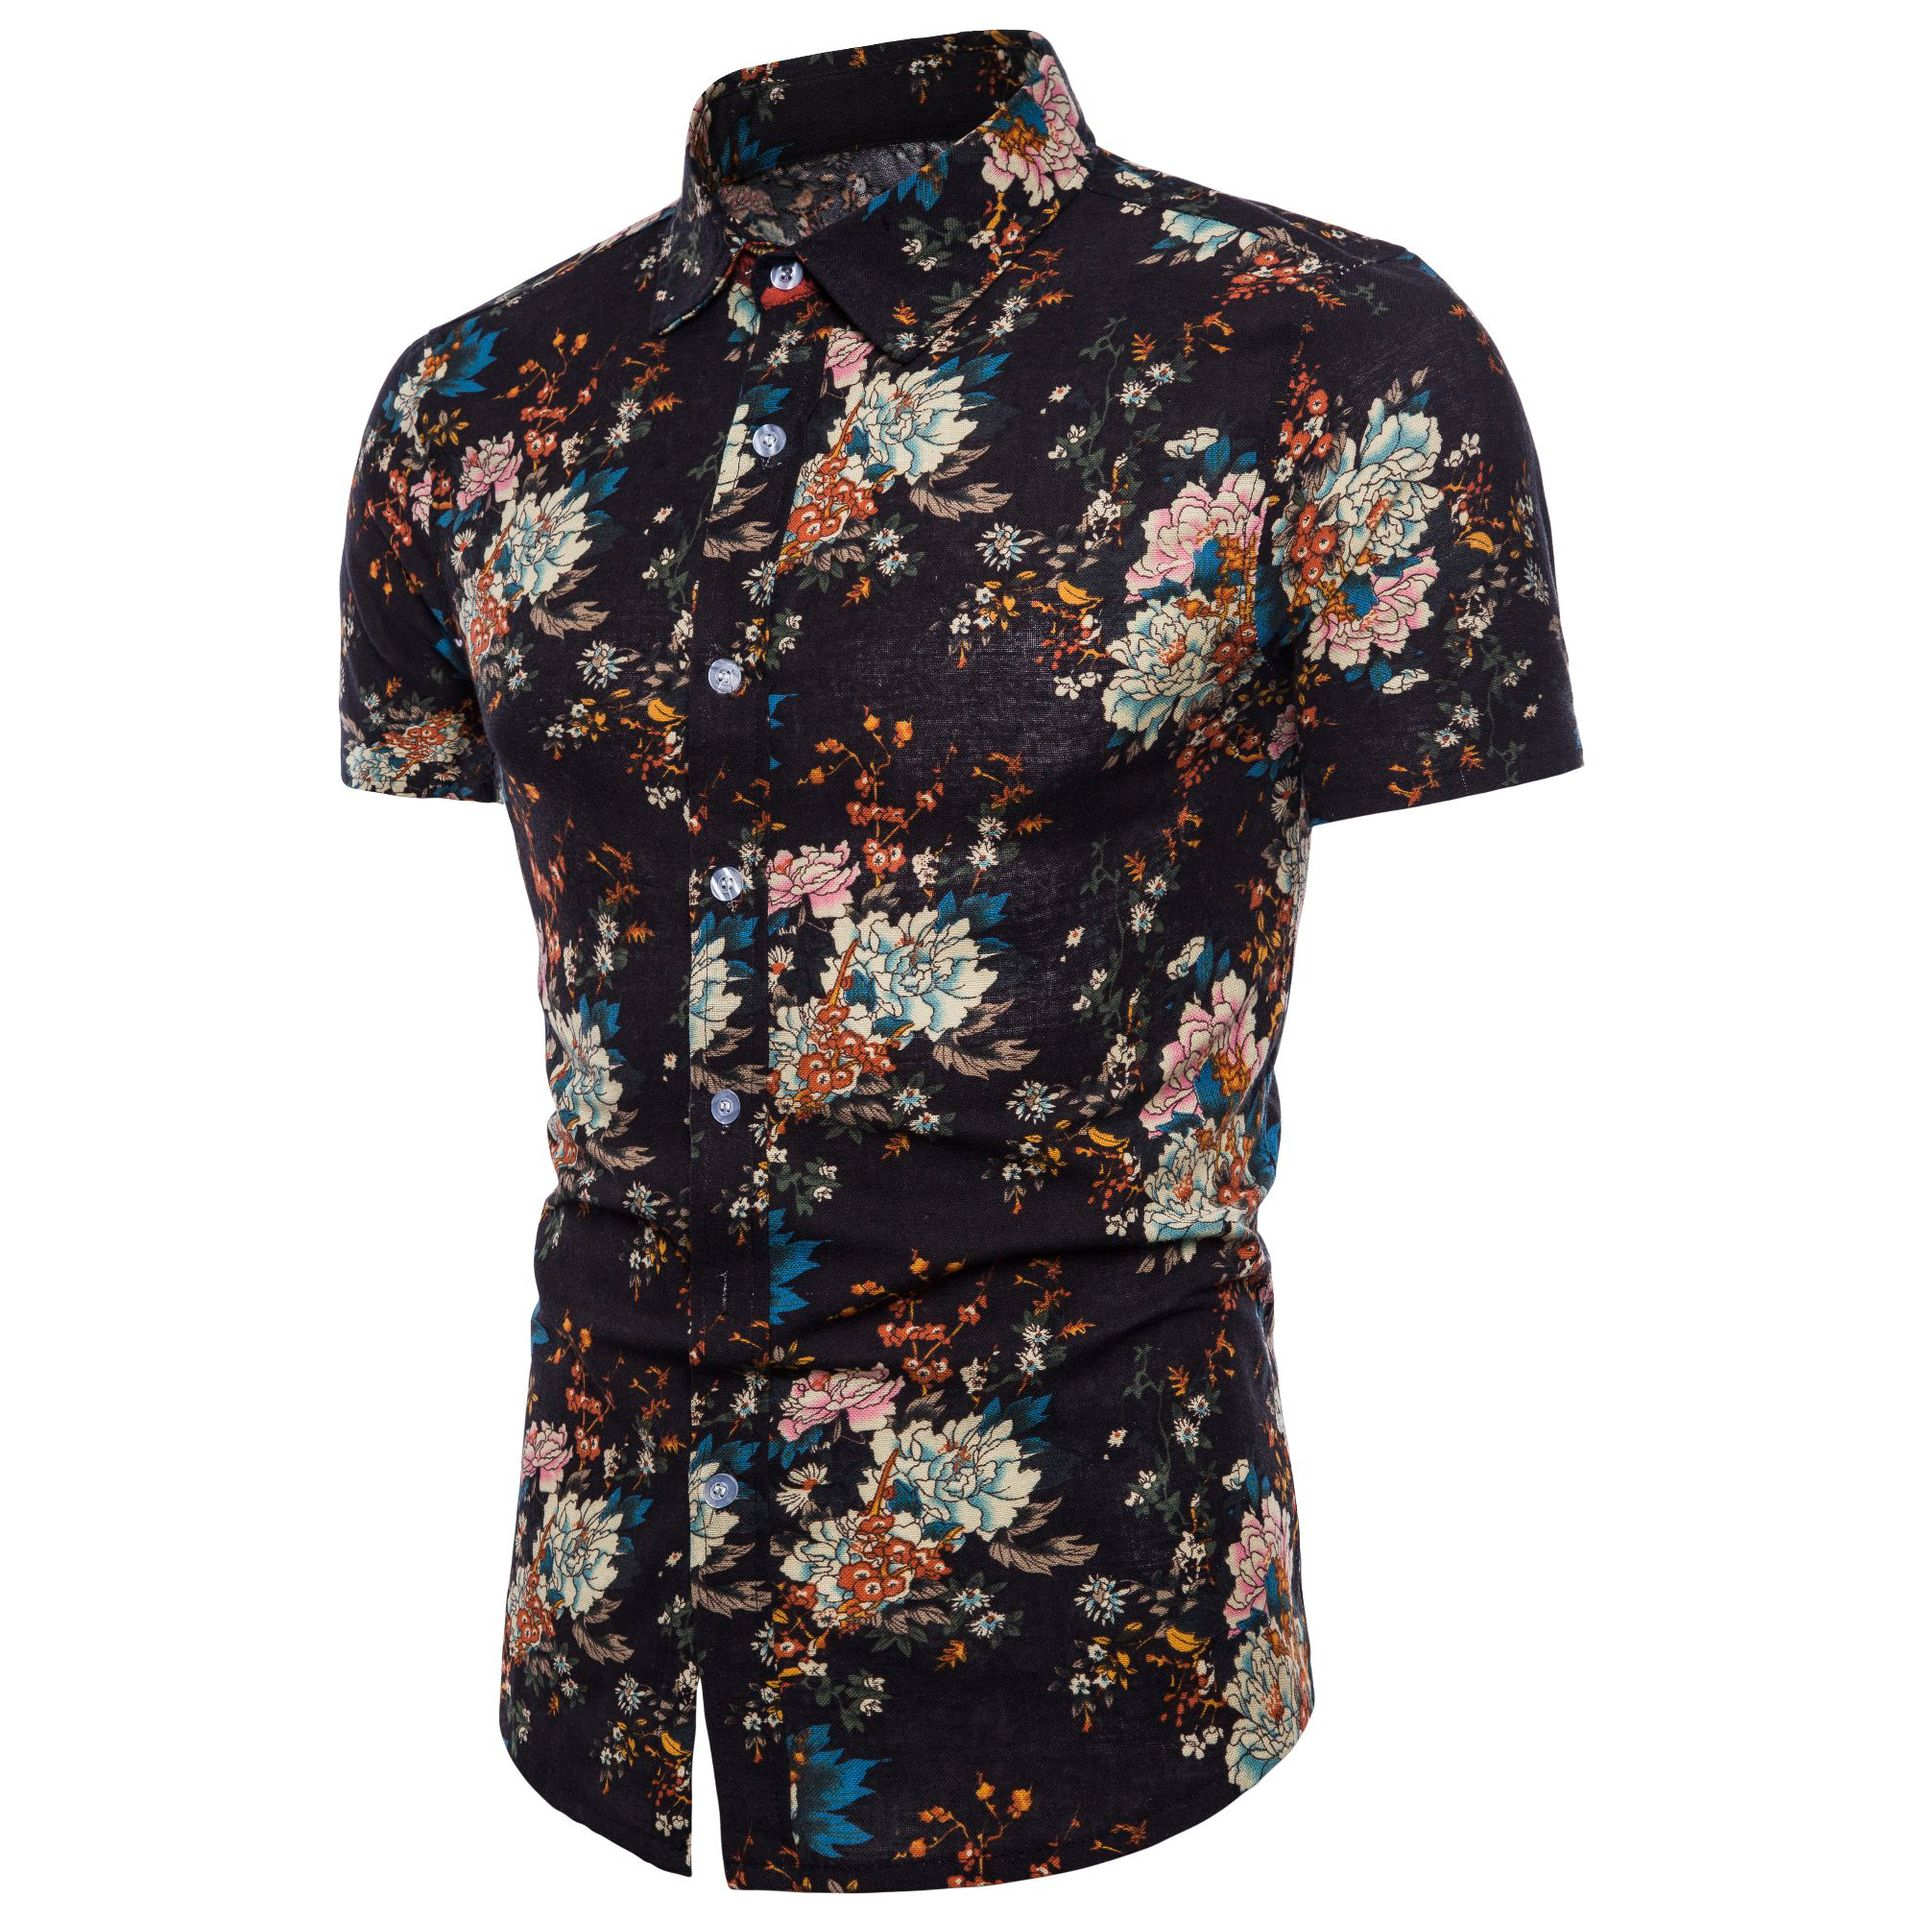 MEN'S WEAR Printed Shirt Summer Wear New Style Large Size Special Offer Beach-Style MEN'S Short Sleeve Shirt Print Shirt